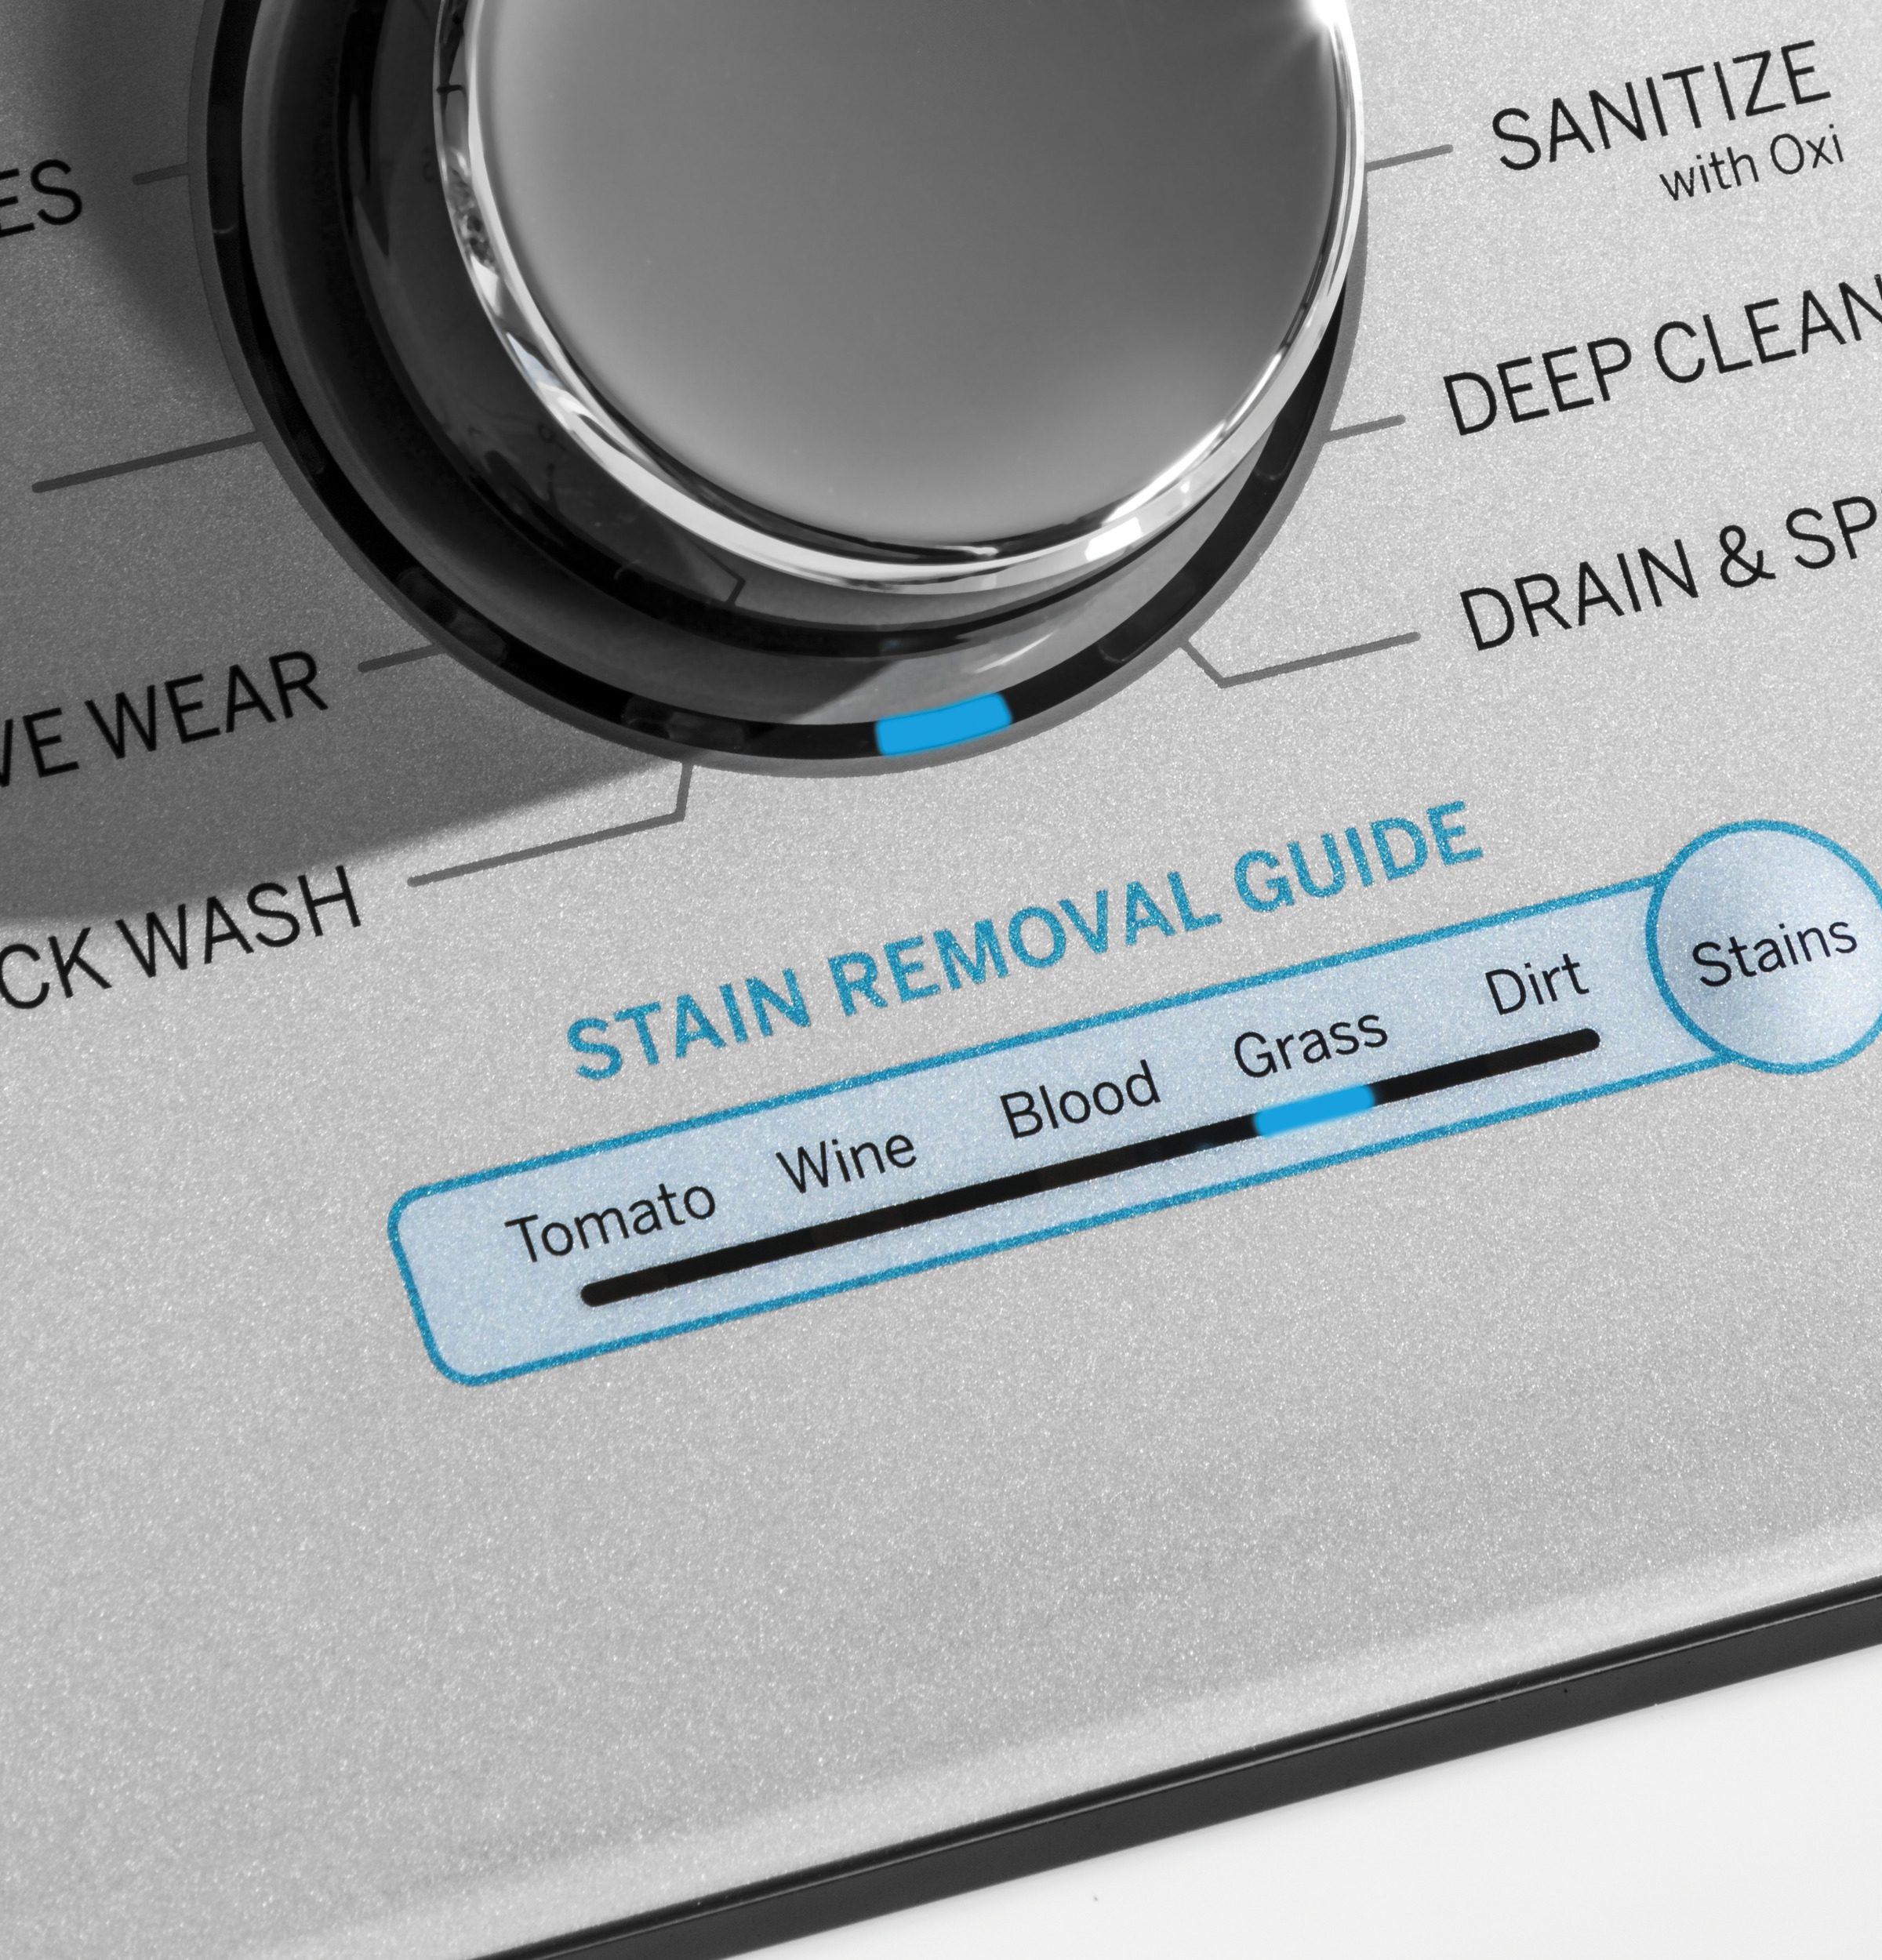 Model: GTW720BSNWS   GE GE® 4.8  cu. ft. Capacity Washer with Sanitize w/Oxi and FlexDispense®